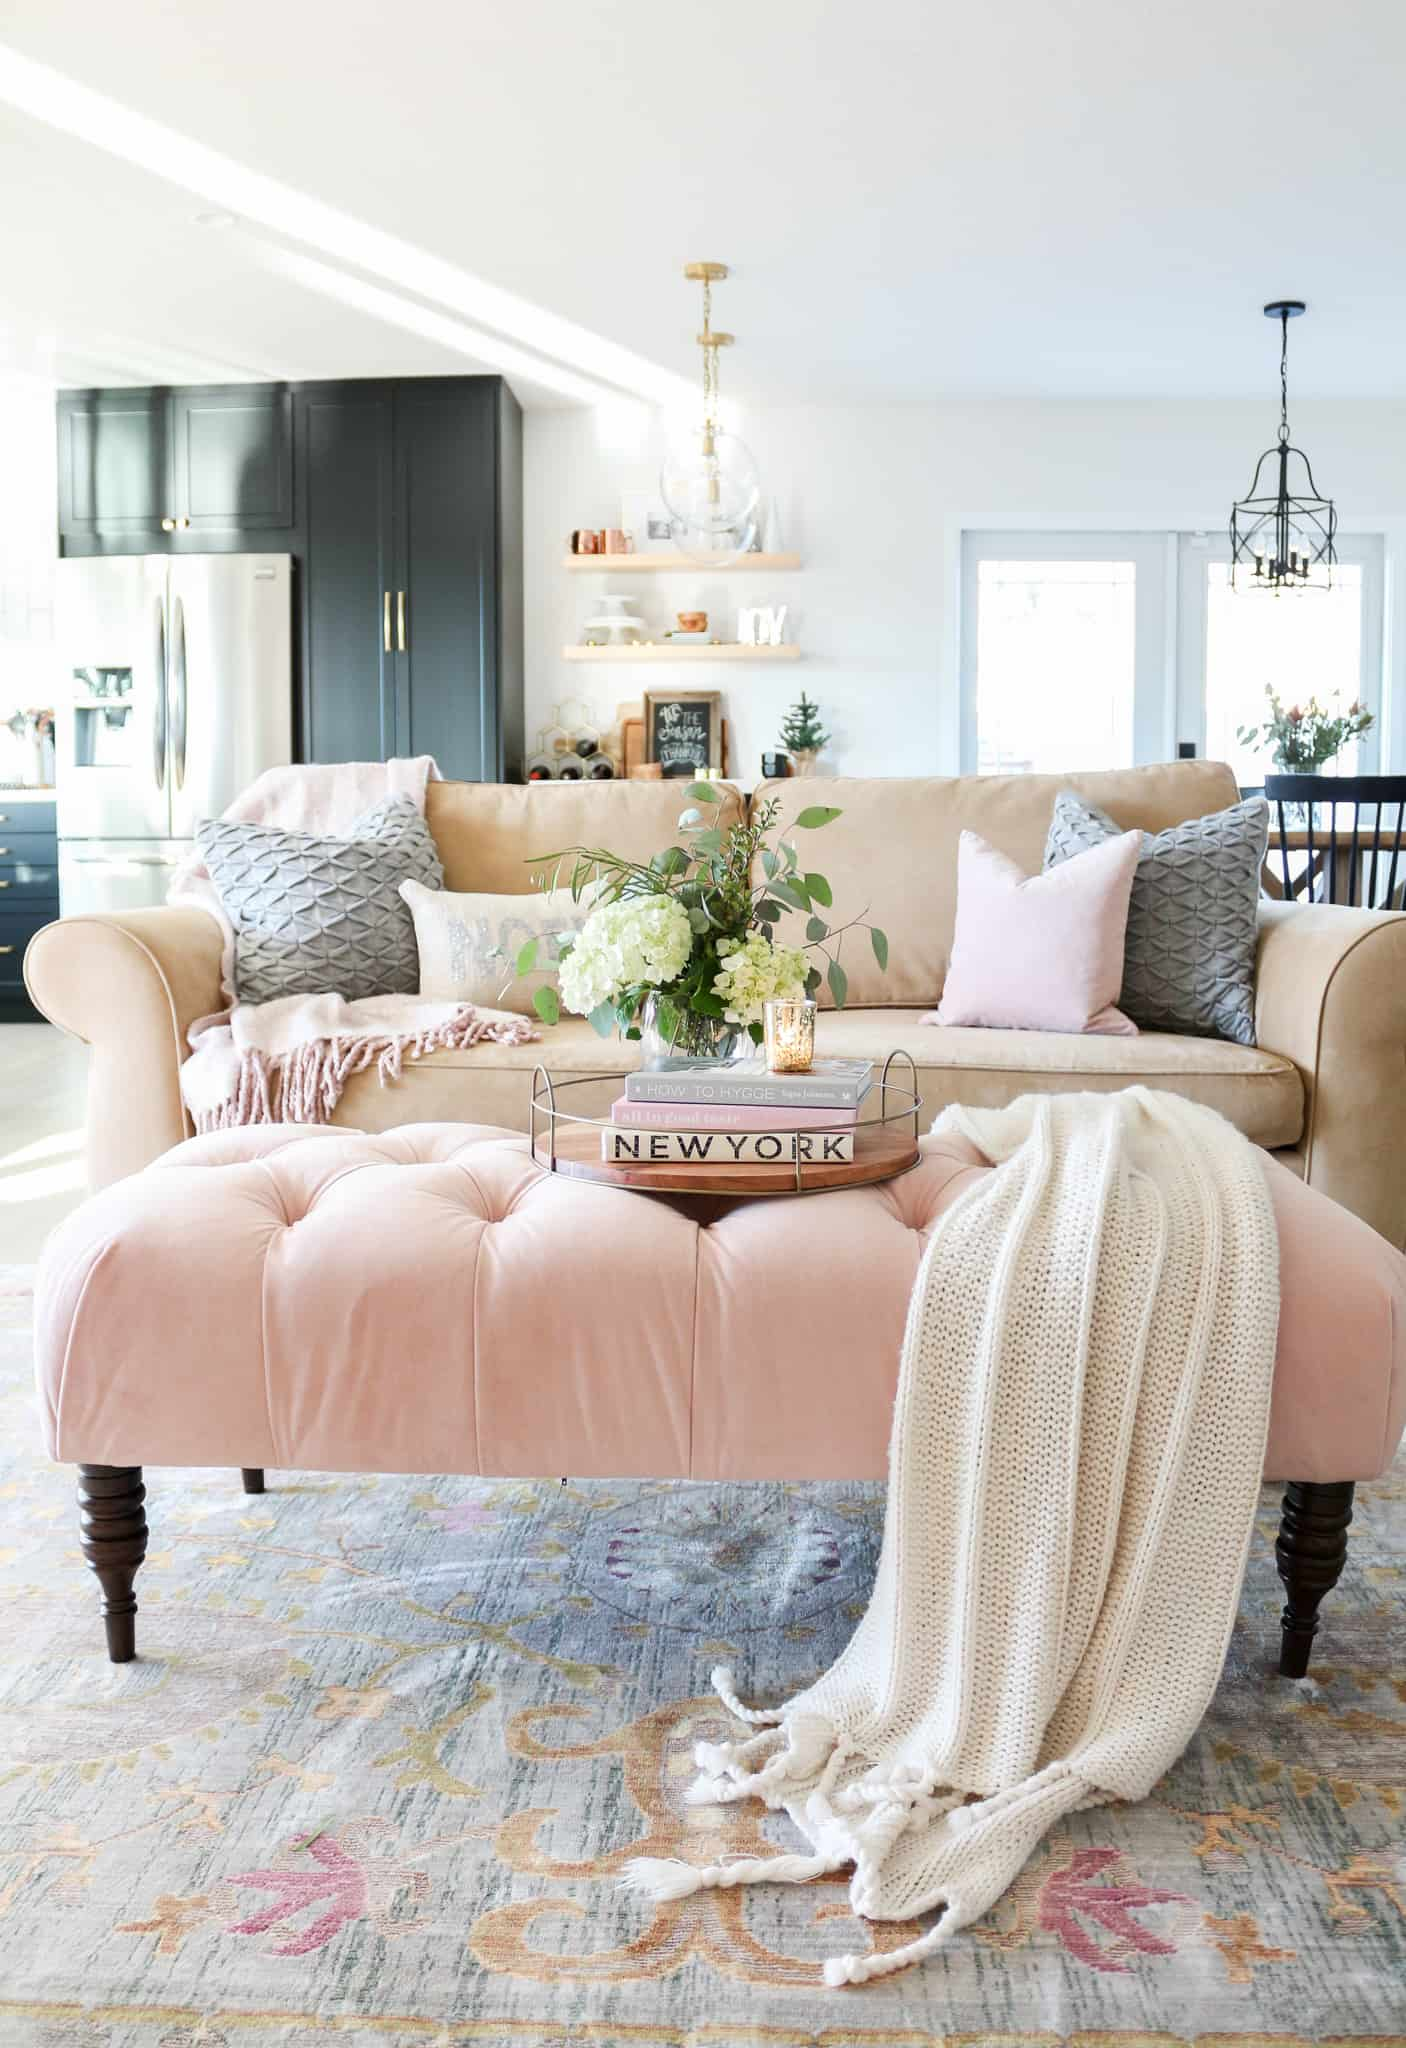 accents of blush pink